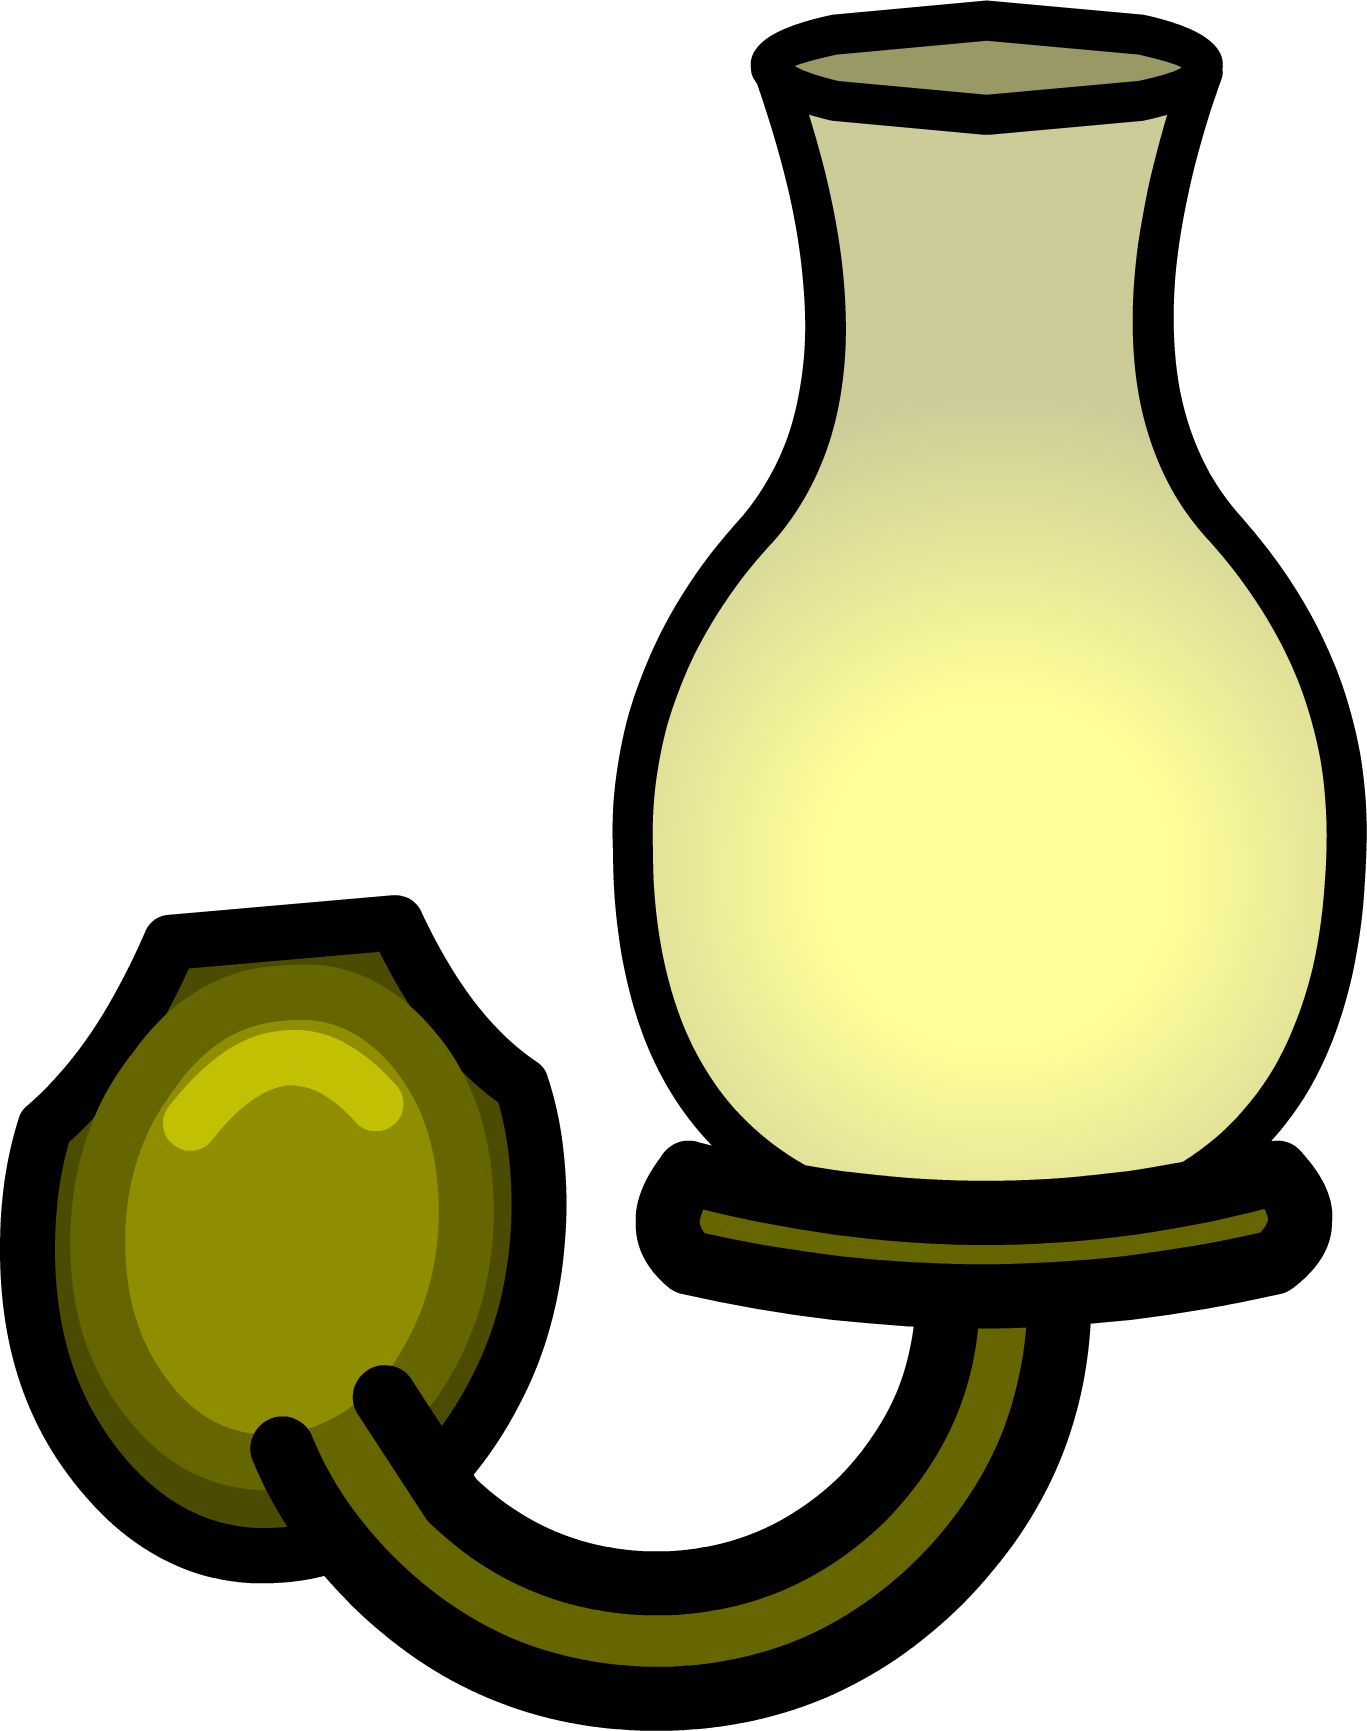 Image - Single Wall Light.PNG | Club Penguin Wiki | FANDOM powered ...